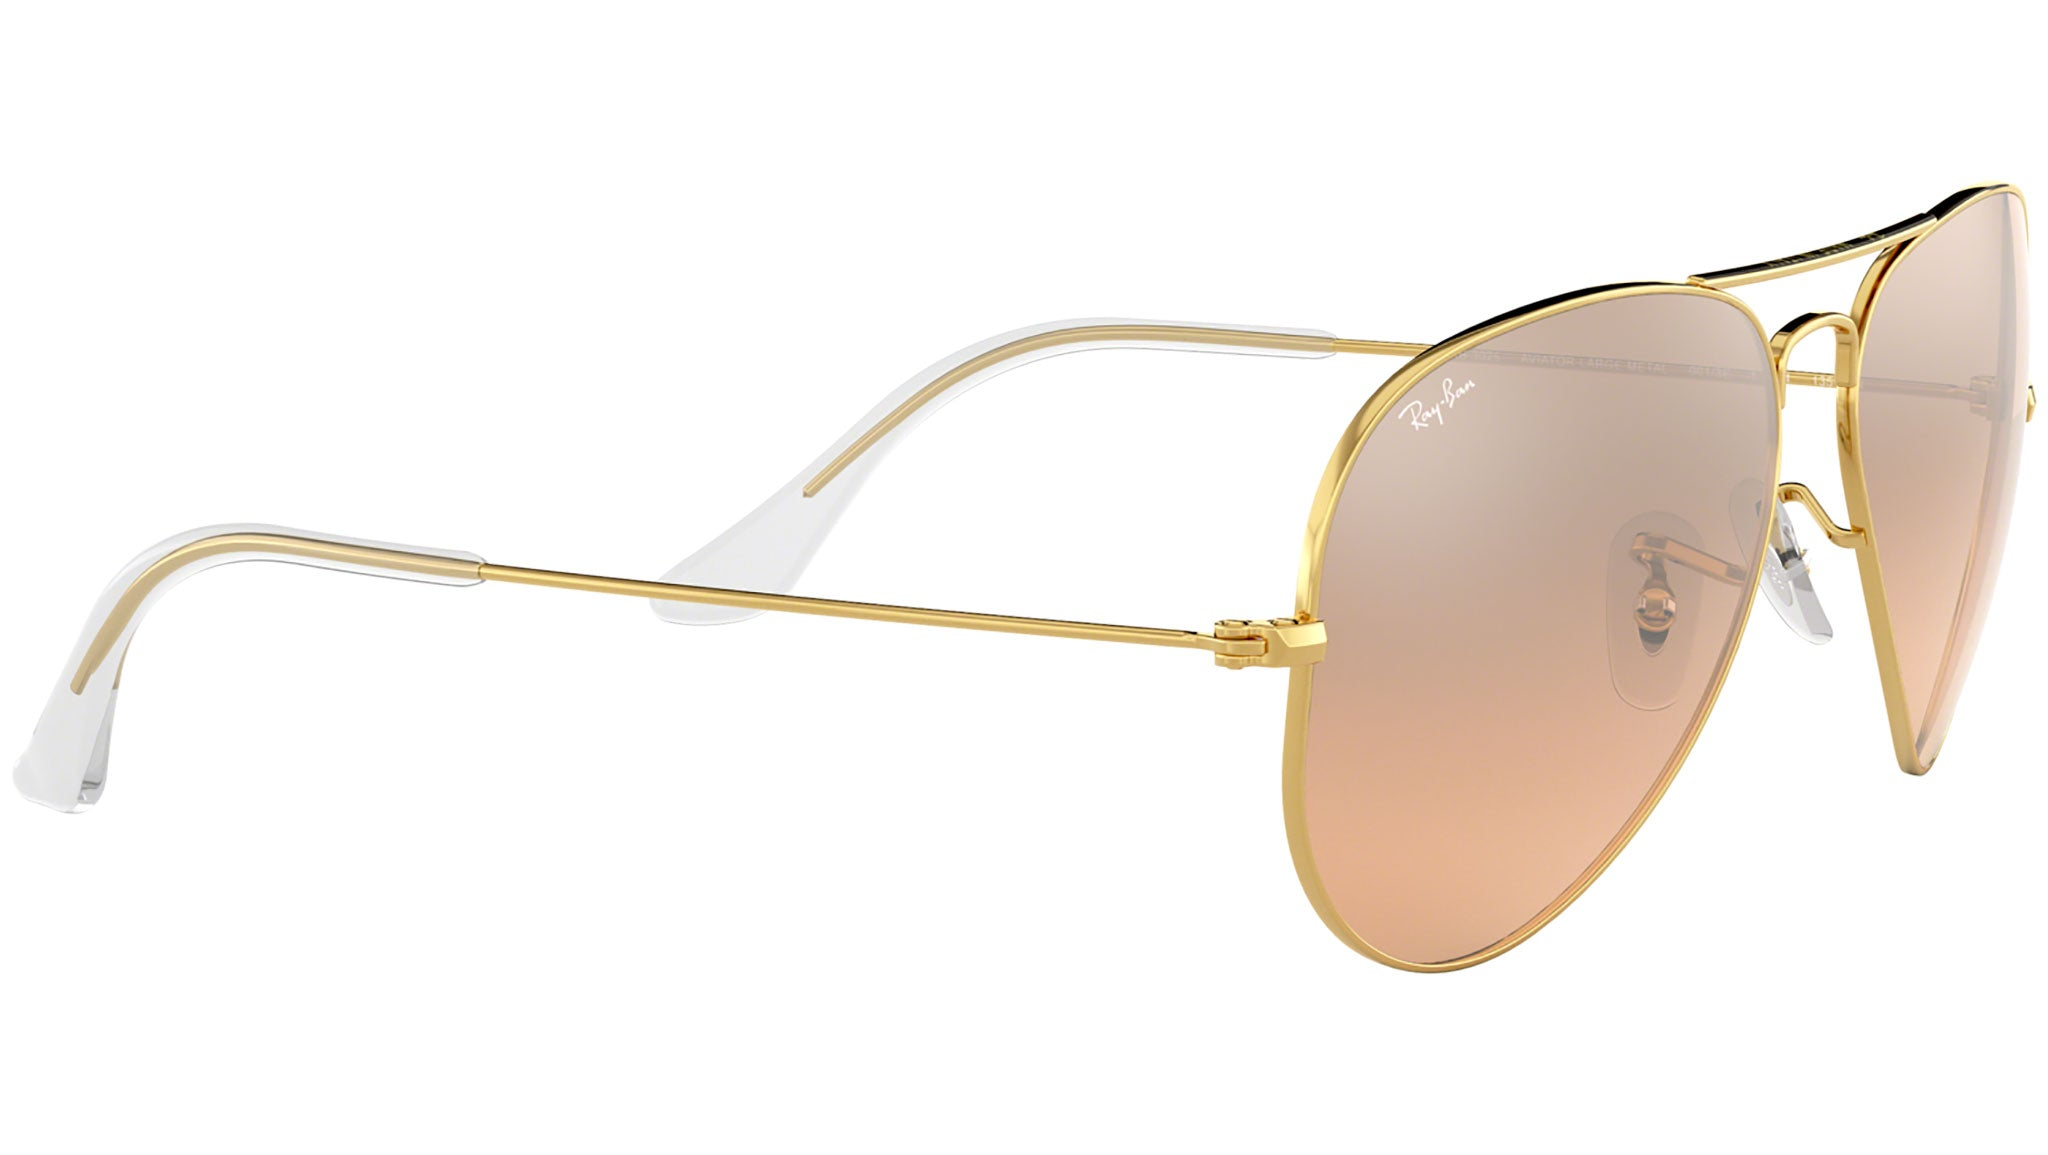 Aviator Gradient RB3025 gold metal pink